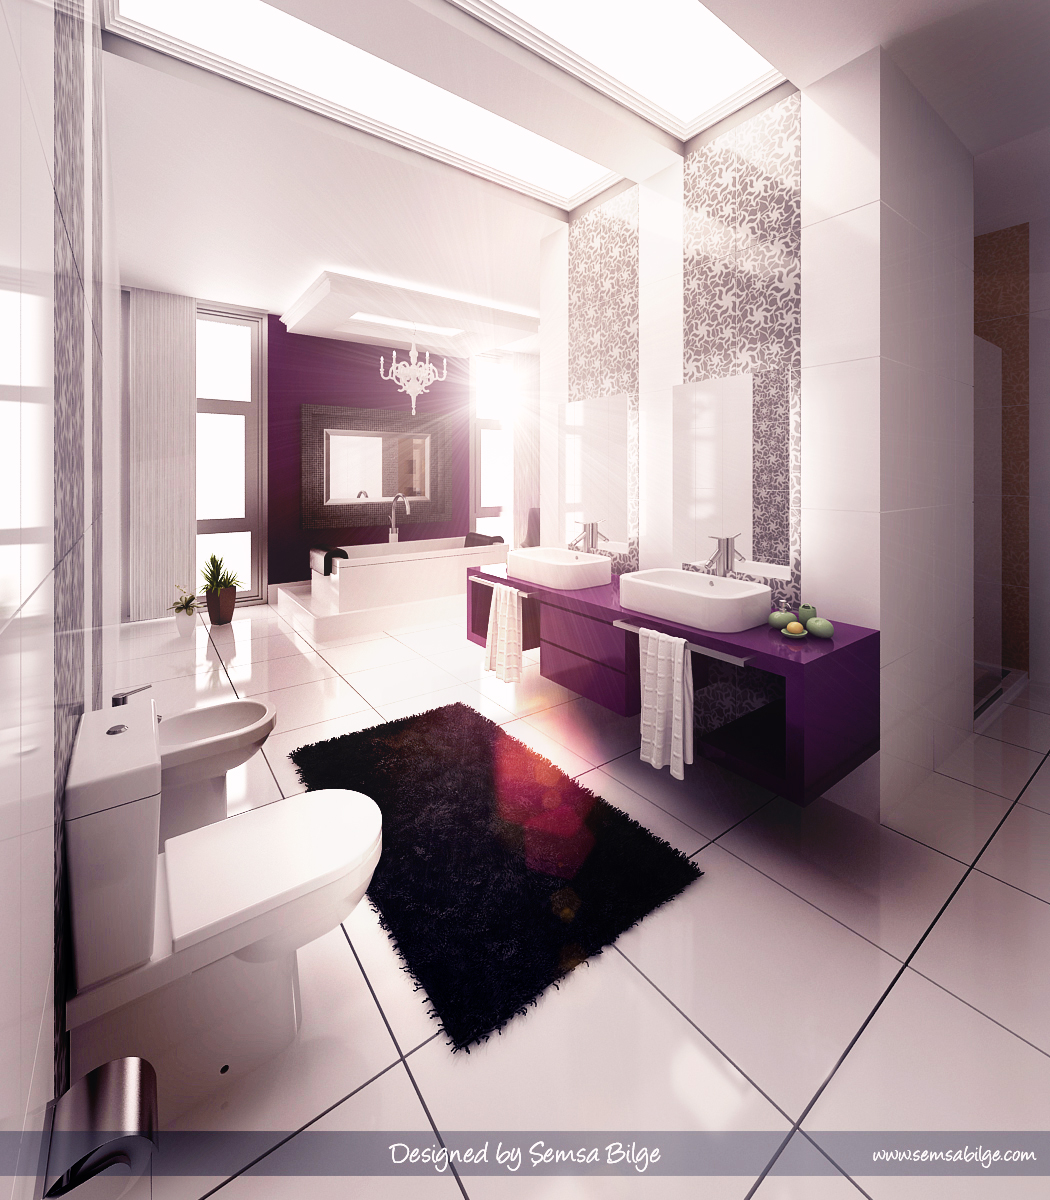 Beautiful bathroom designs ideas interior design for Bathroom design galleries